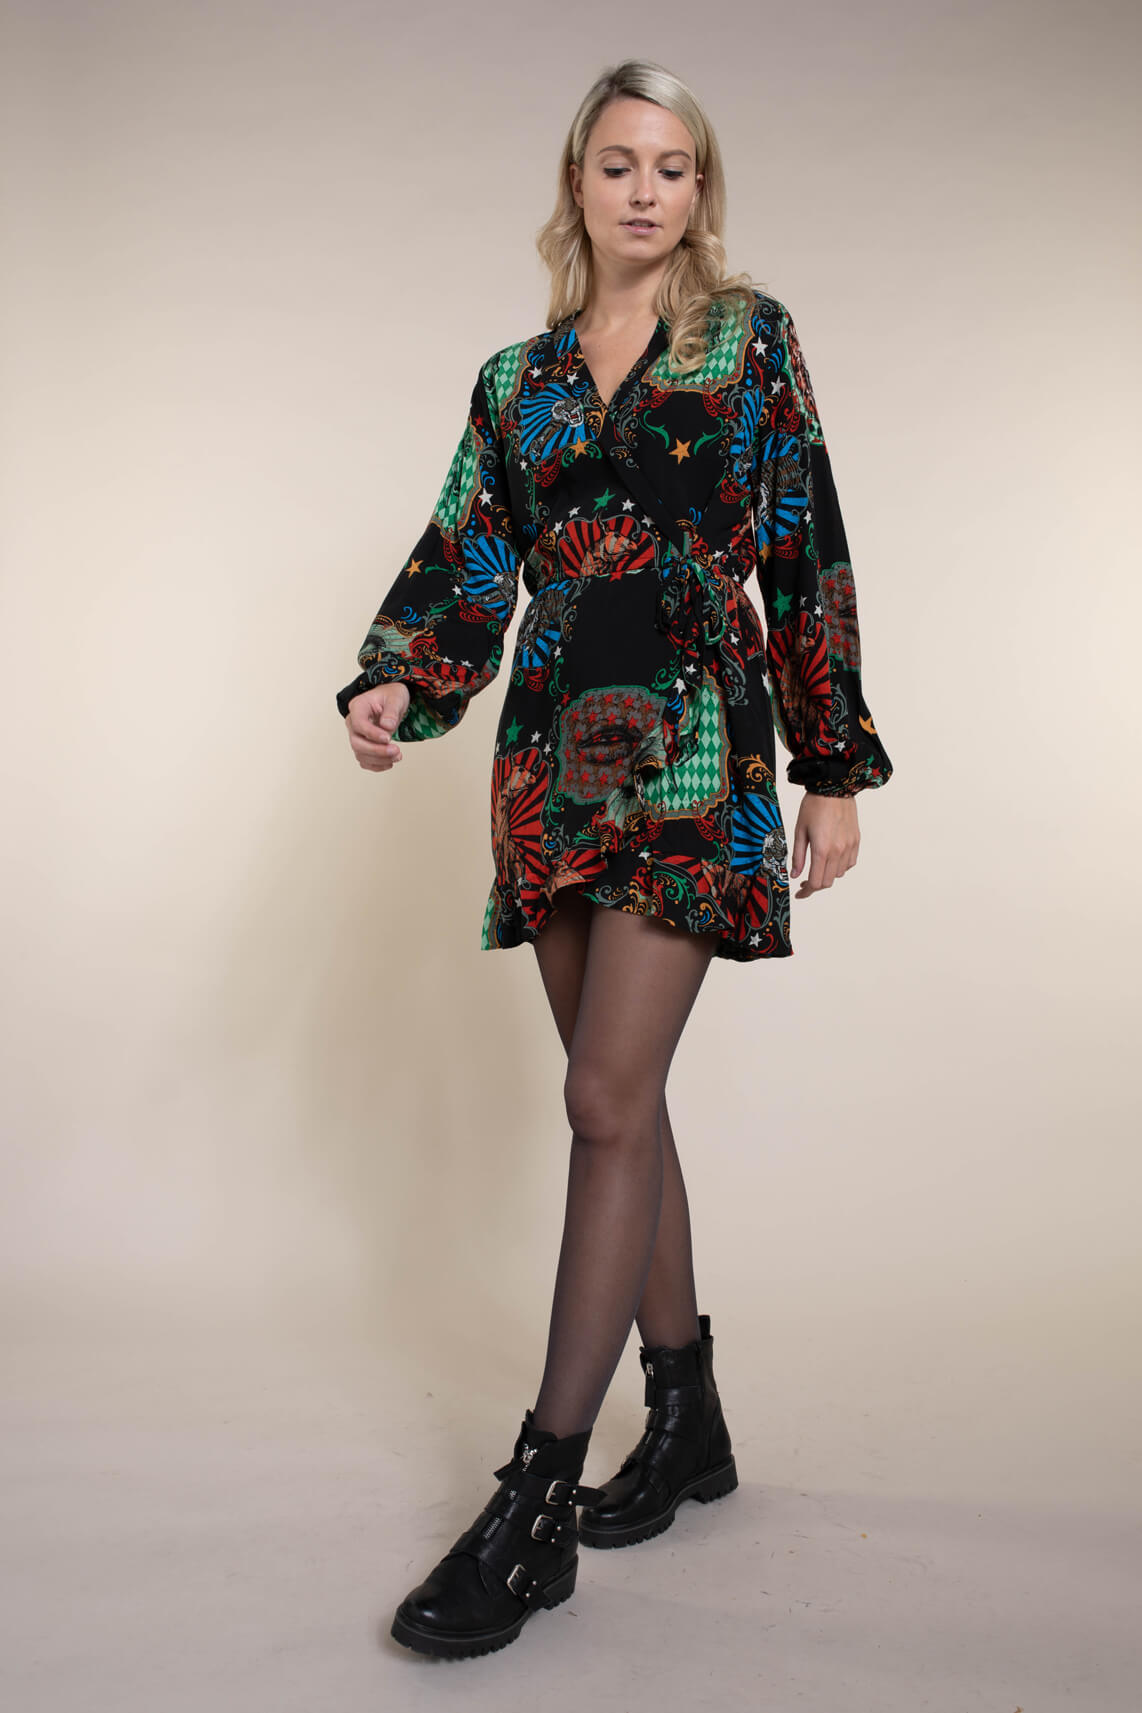 Alix The Label Dames Circus overslag jurk Blauw